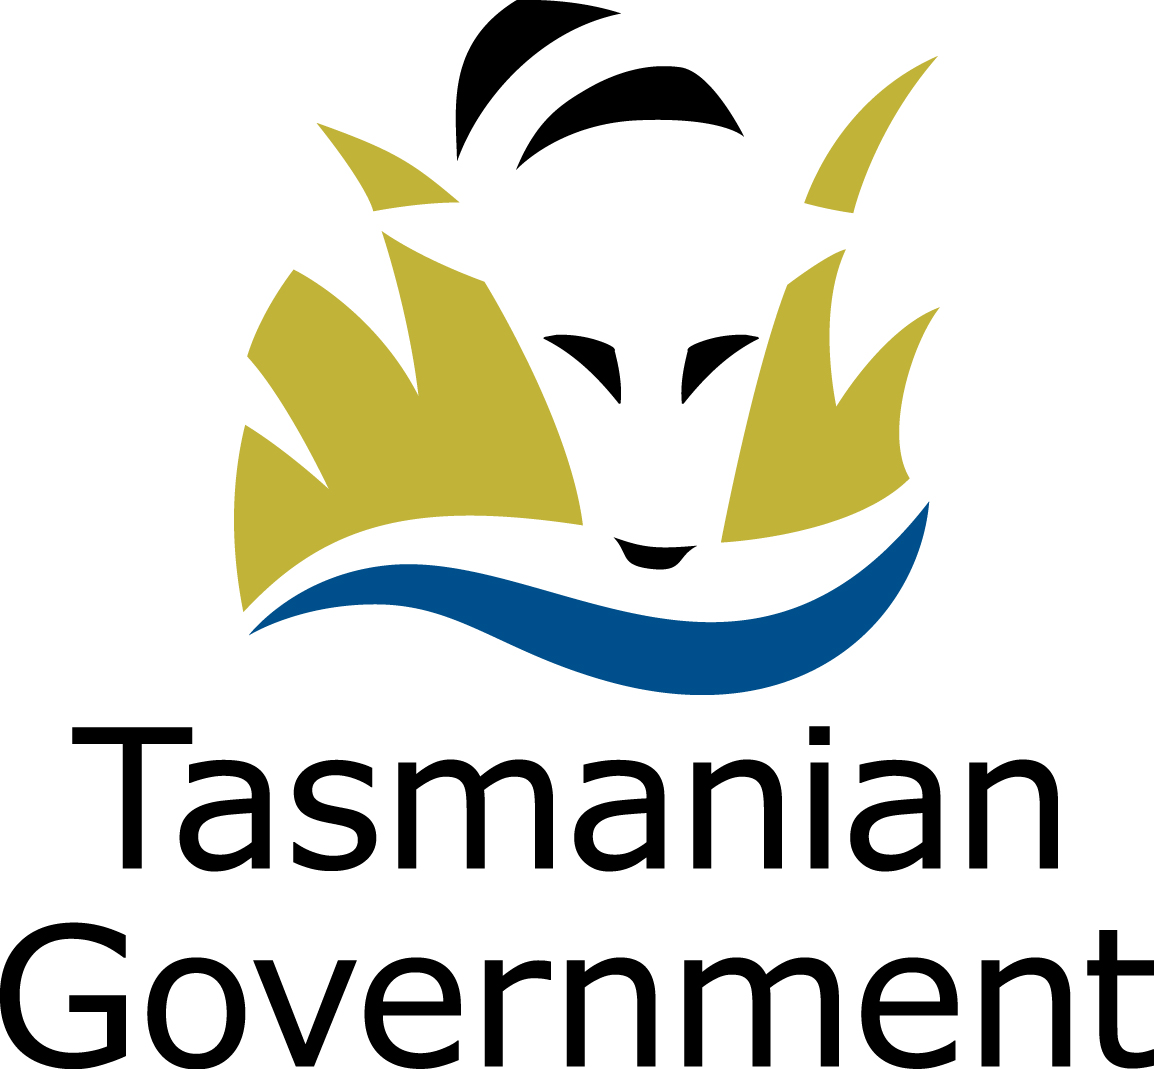 Supported by the Tasmanian Government